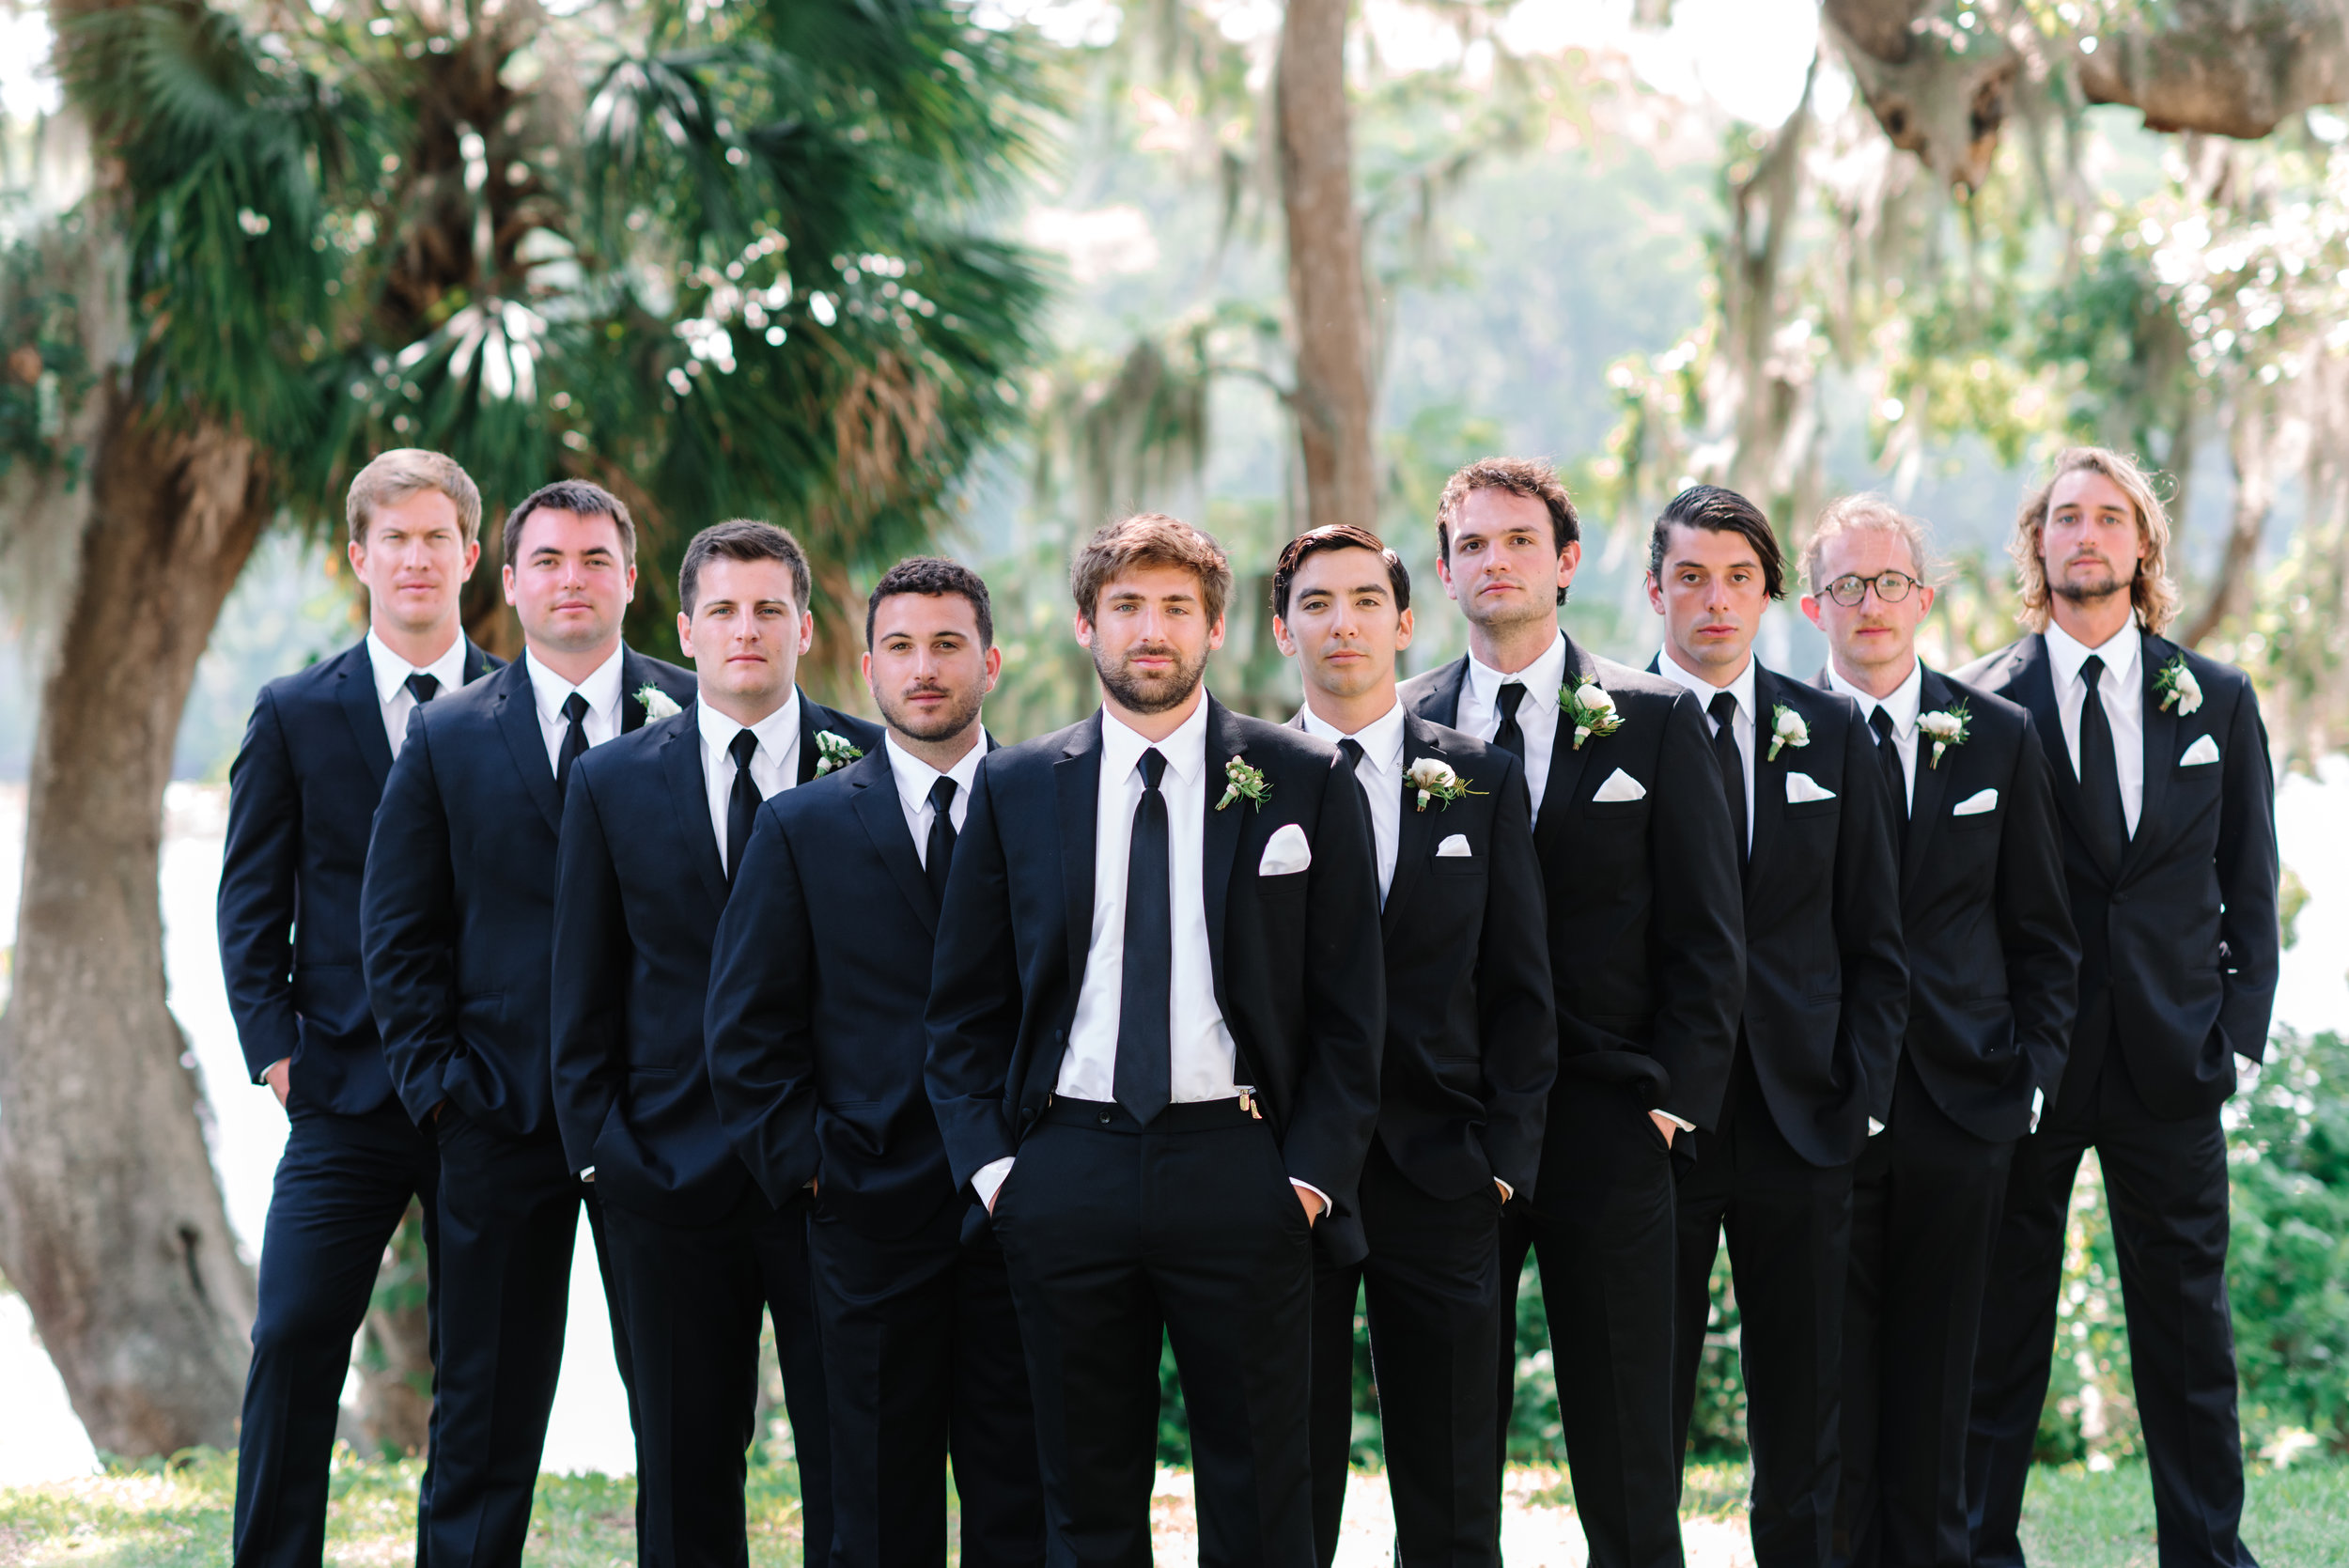 Groomsmen in black tuxedos for wedding portraits at Wachesaw Plantation  //  A Lowcountry Wedding Magazine & Blog